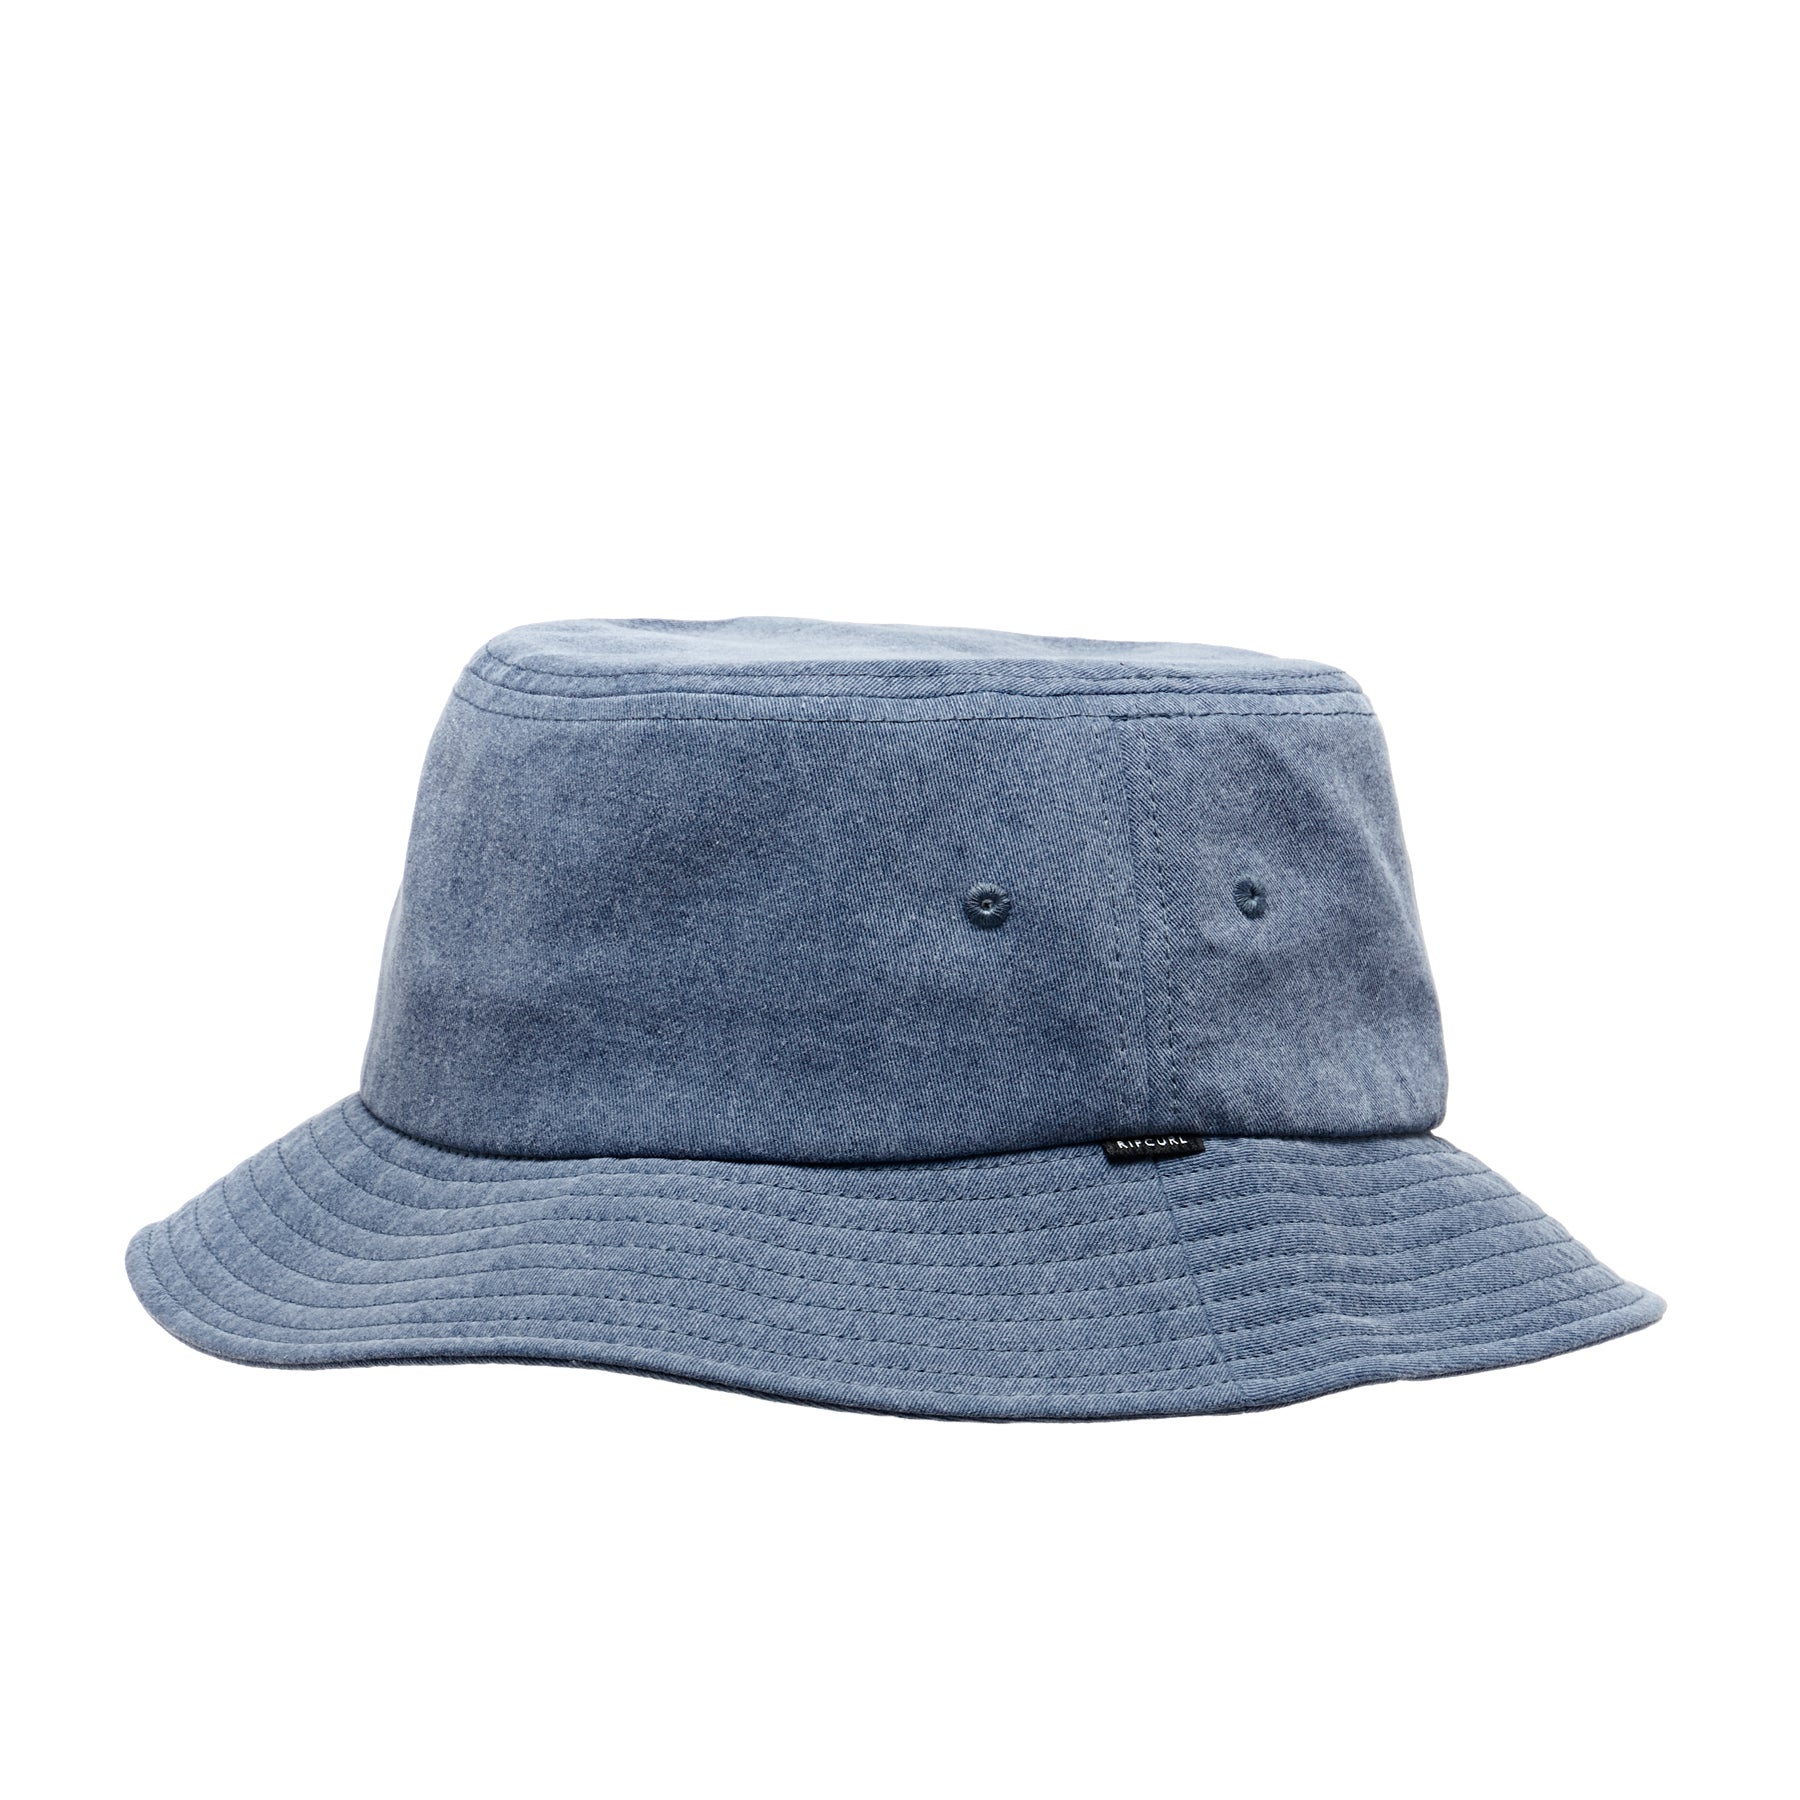 Rip Curl Lighthouse Bucket Hat - Navy